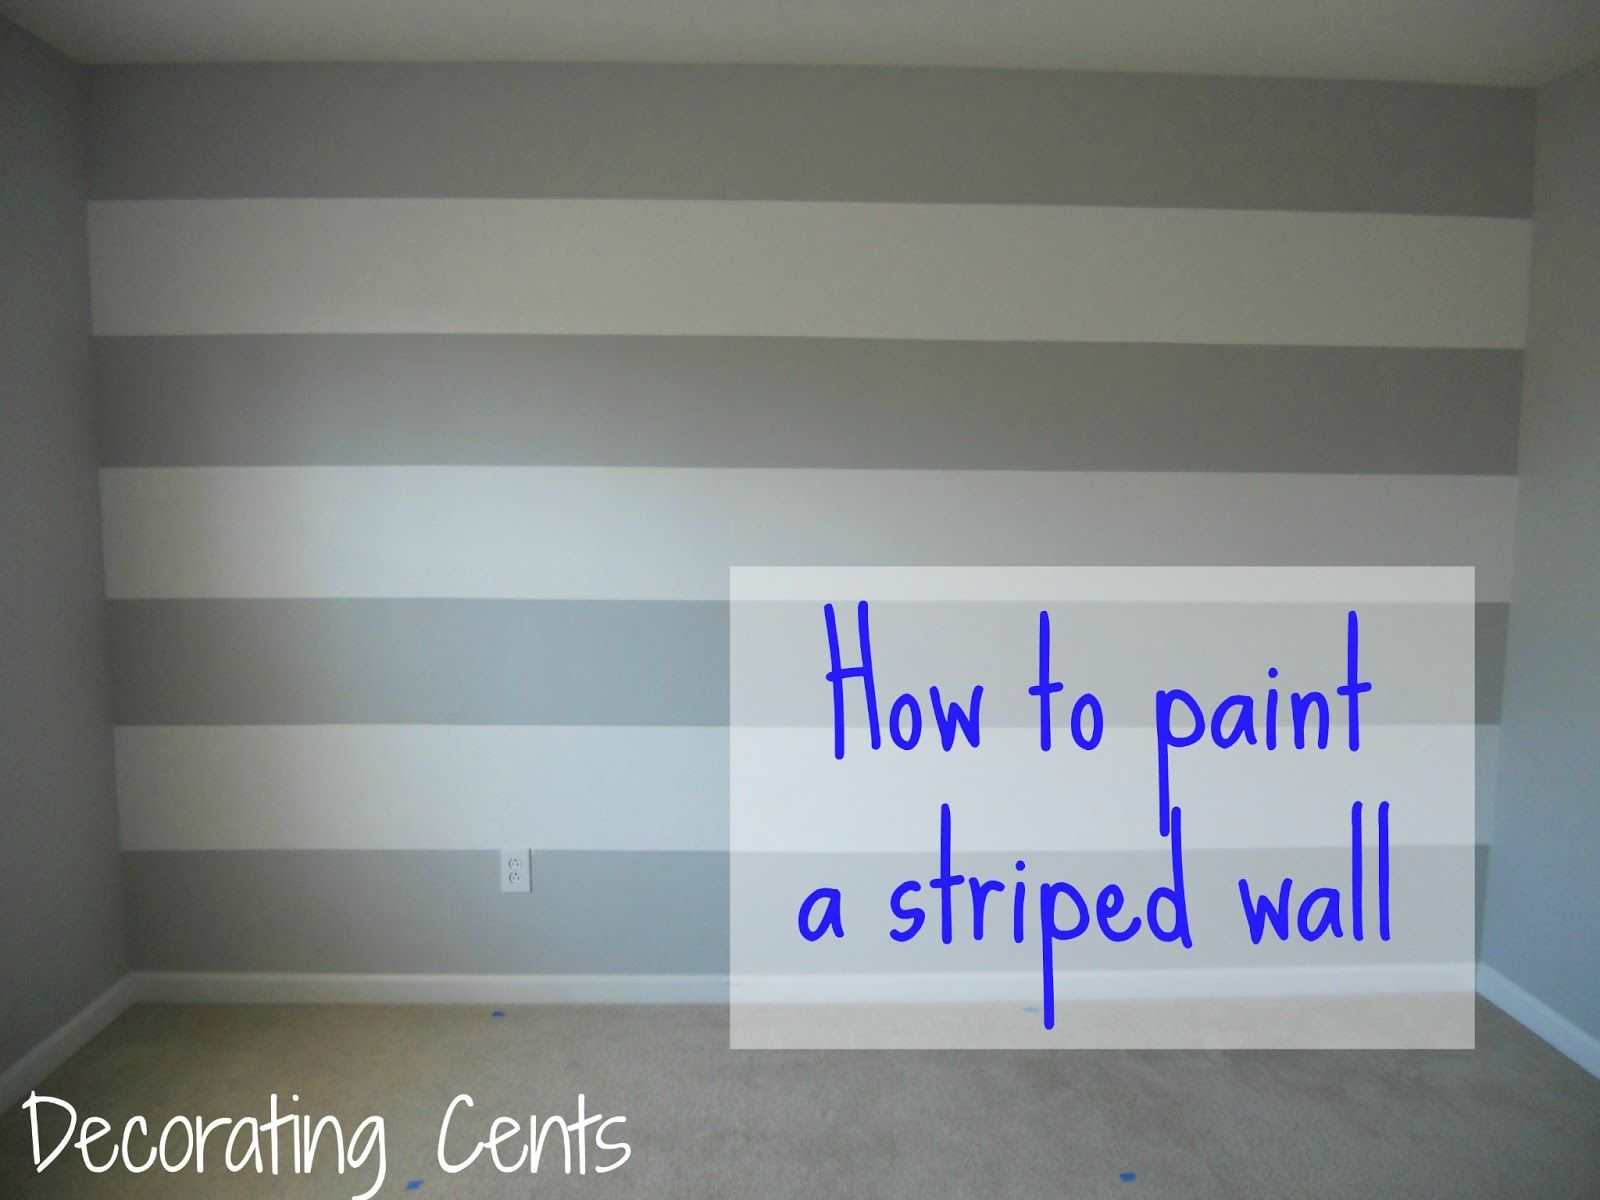 Decorating cents painting a striped wall for the home for Painting stripes on walls in kids room